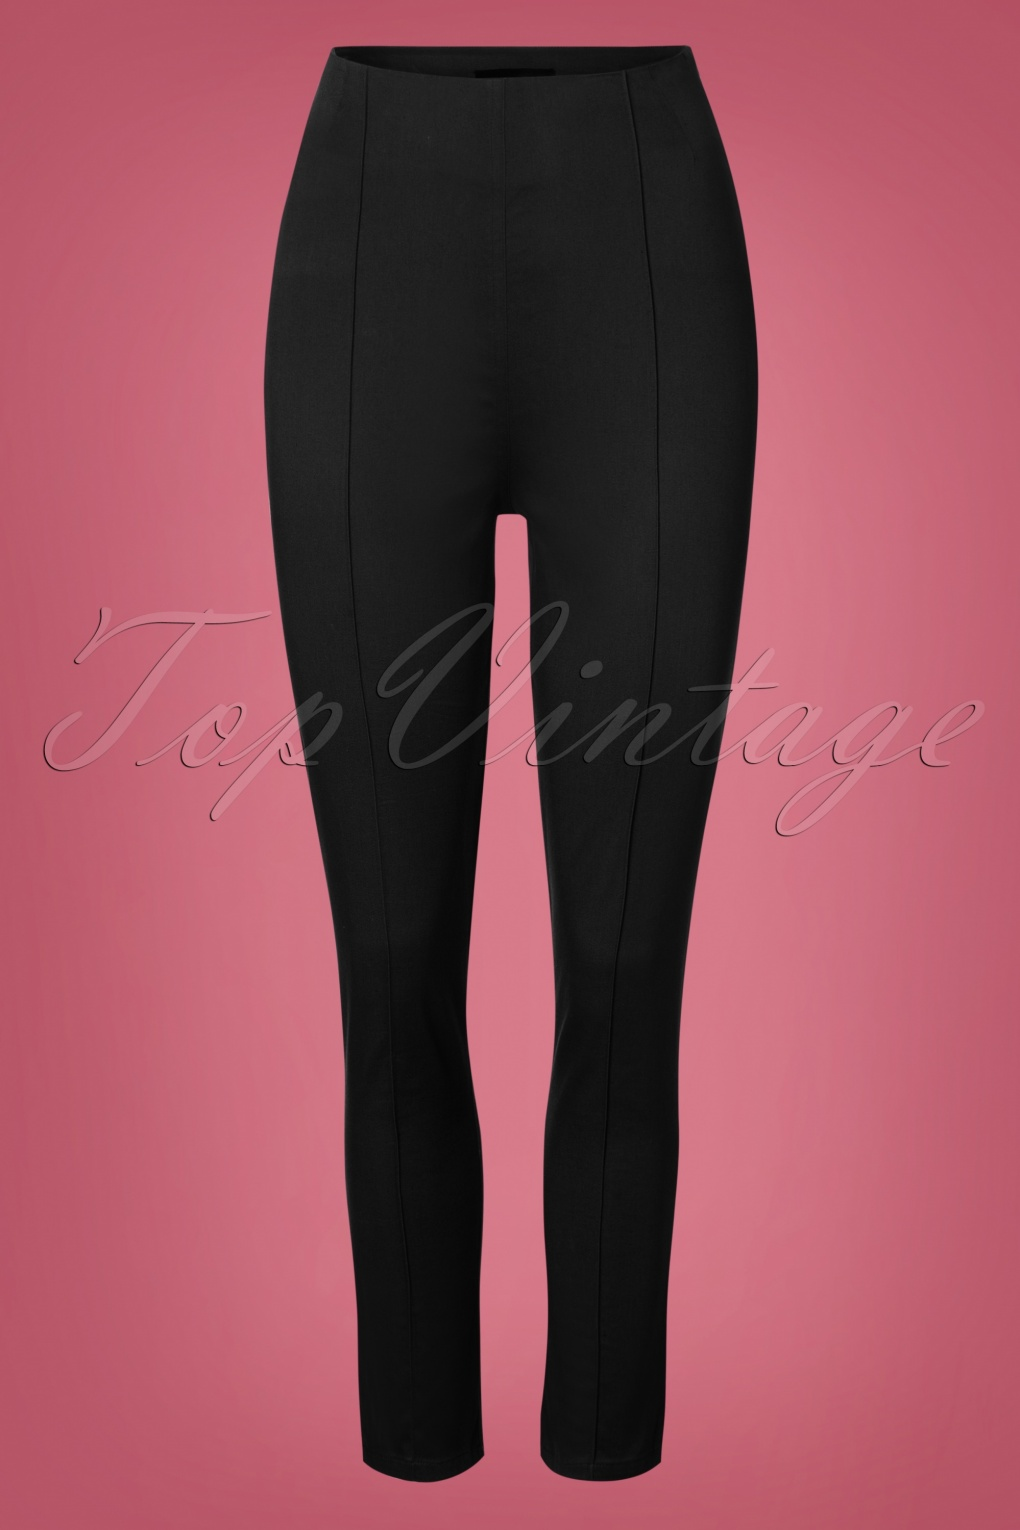 1950s Pants & Jeans- High Waist, Wide Leg, Capri, Pedal Pushers 50s Bonnie Trousers in Black £42.13 AT vintagedancer.com